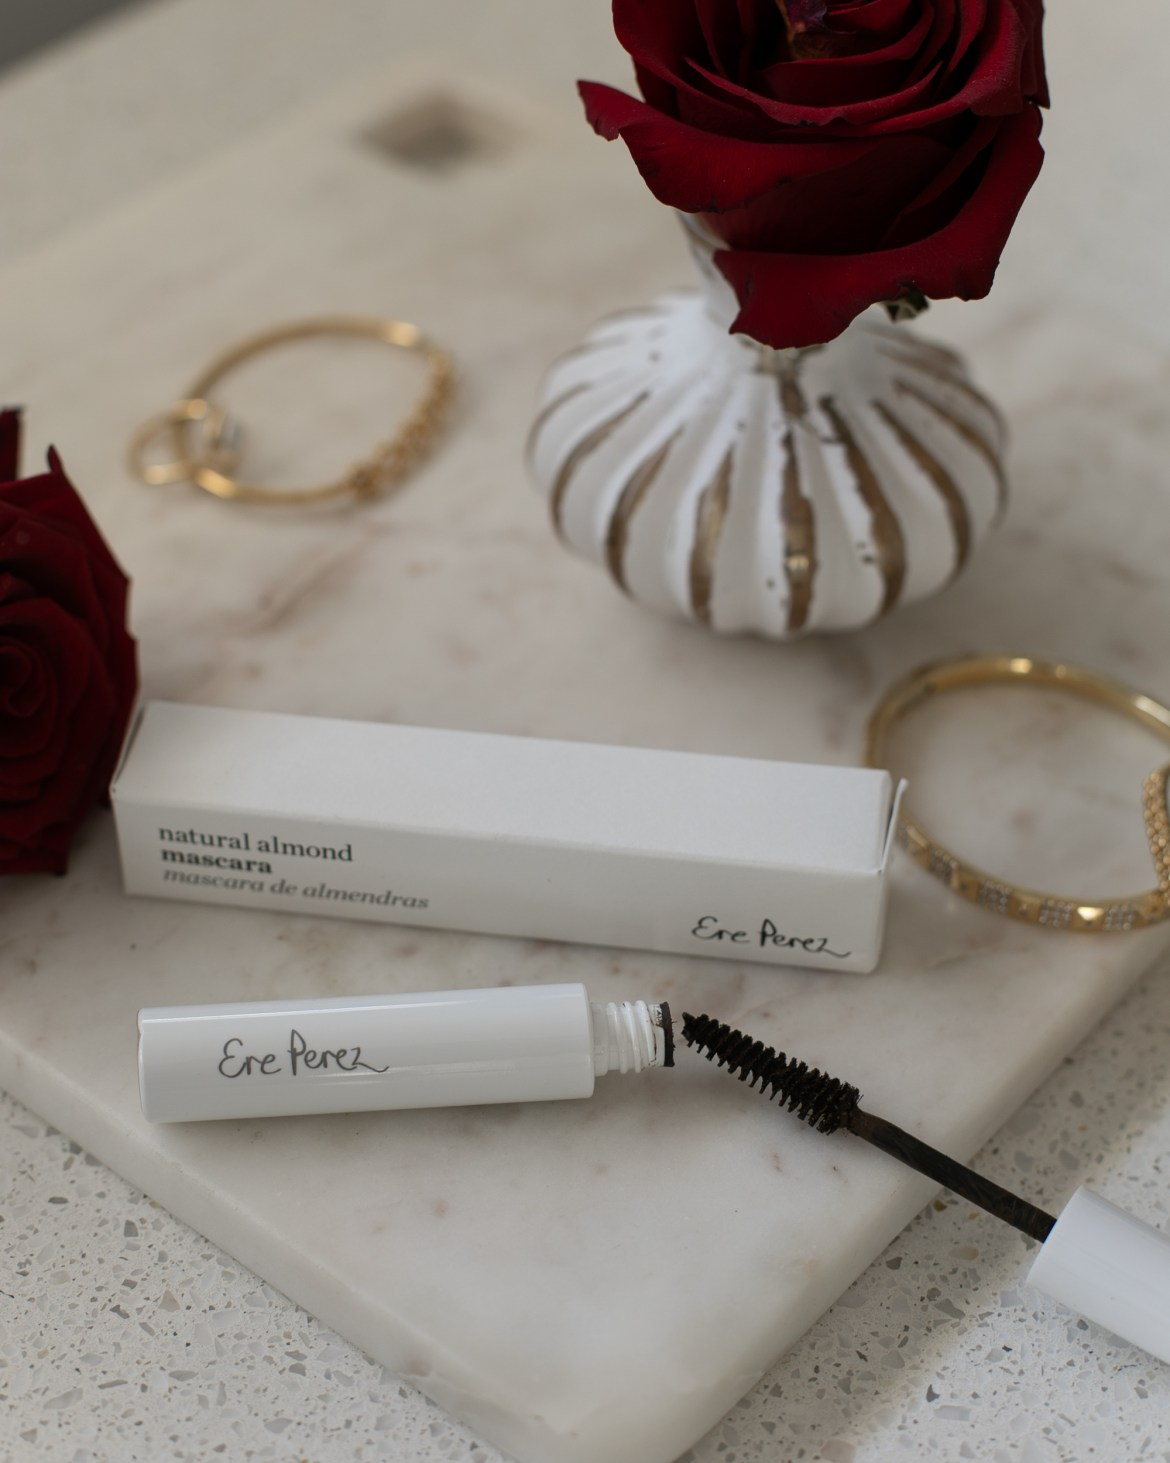 Ere Perez brown mascara for a natural beauty look this Valentine's Day